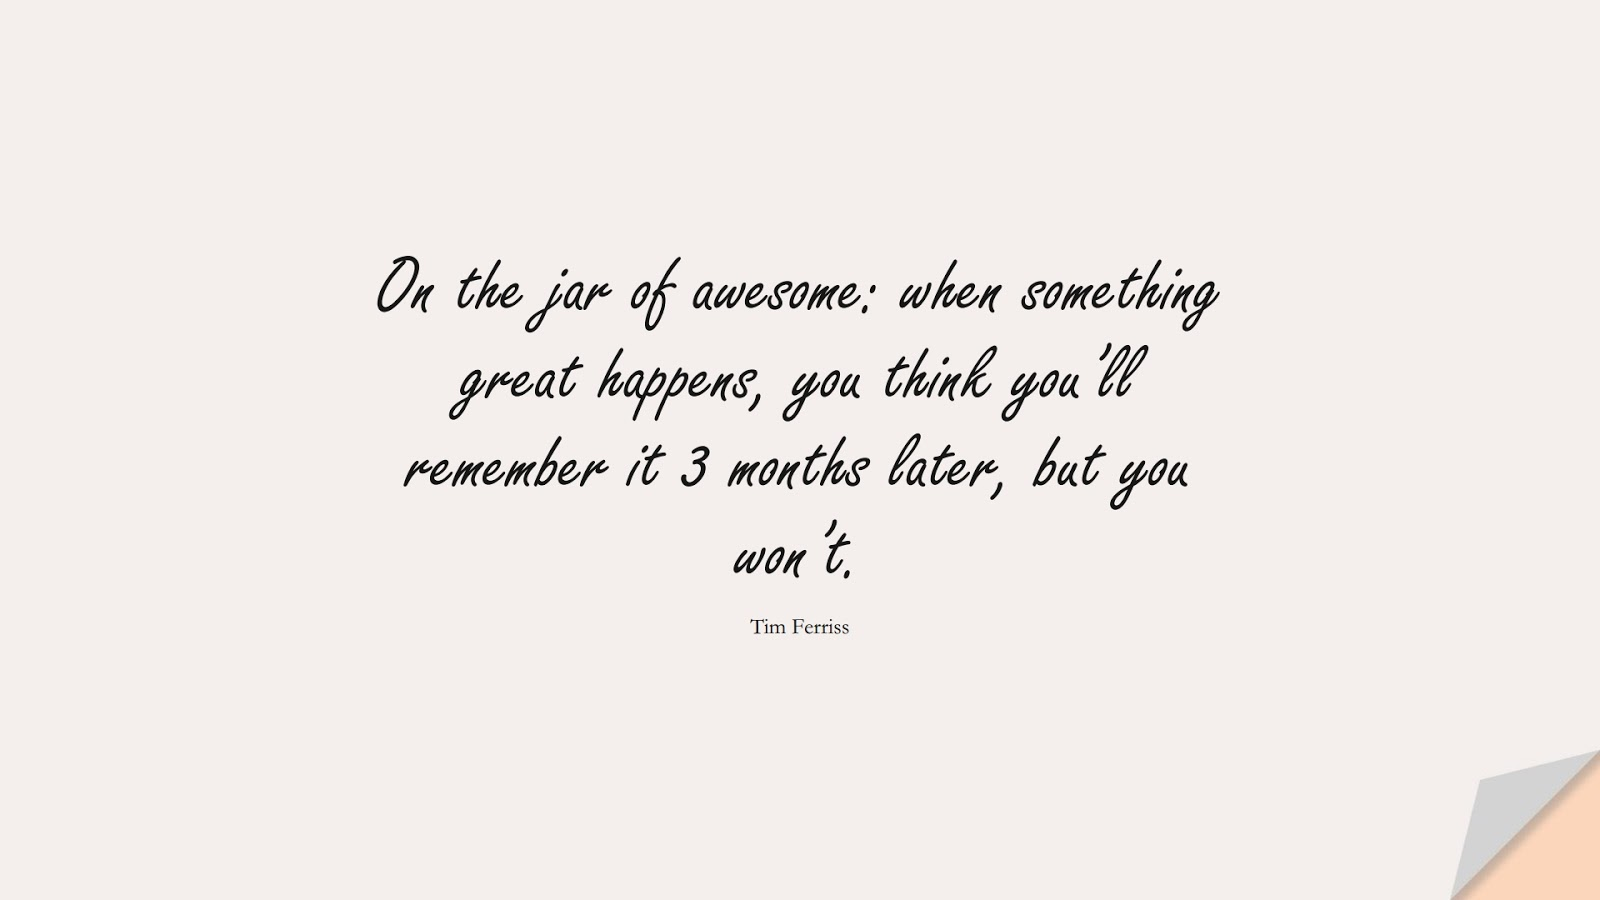 On the jar of awesome: when something great happens, you think you'll remember it 3 months later, but you won't. (Tim Ferriss);  #TimFerrissQuotes